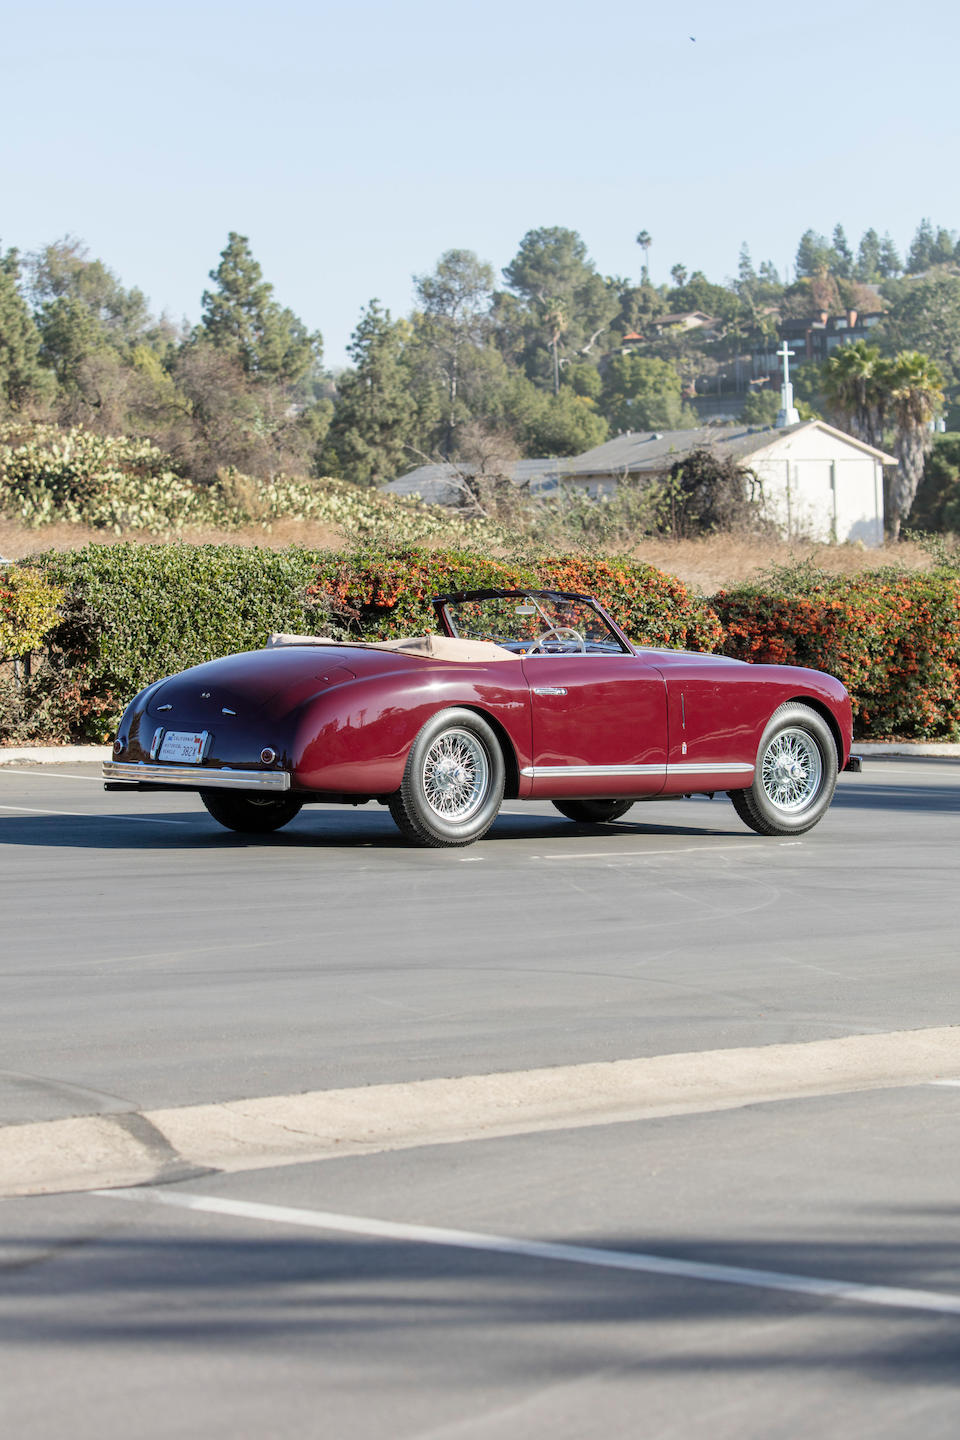 <b>1951 Alfa Romeo 6C 2500 Super Sport Cabriolet</b><br />Chassis no. 915922<br />Engine no. 928329